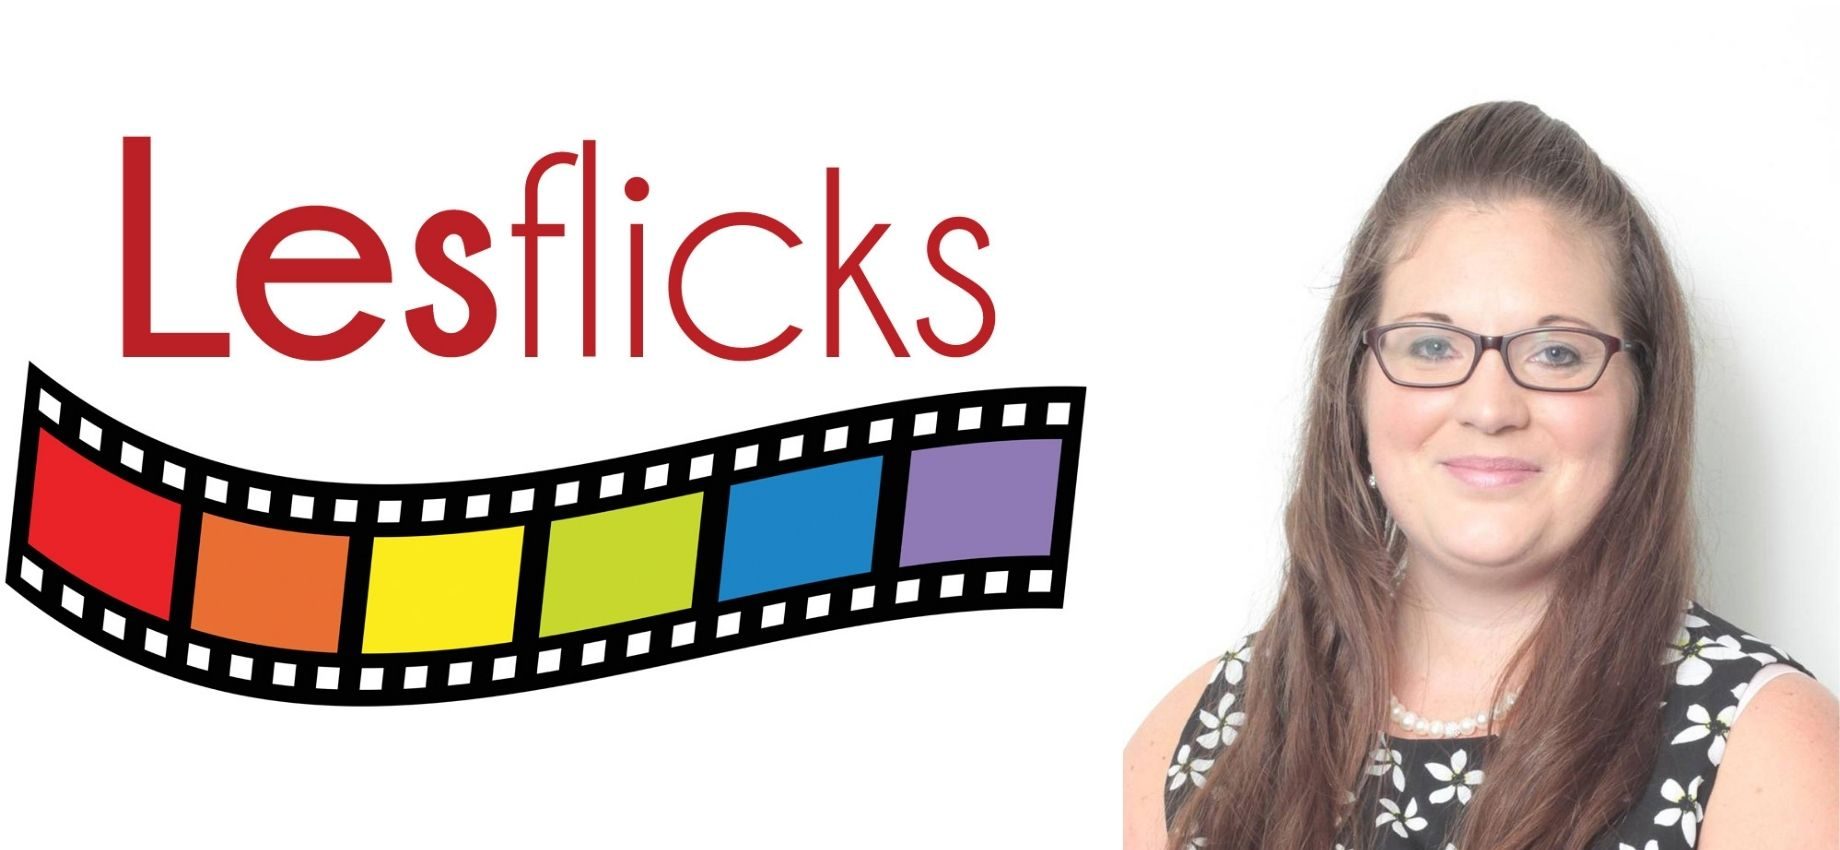 EXCLUSIVE INTERVIEW: Naomi Bennett from Lesflicks Talks Being a VOD Service That the Queer Community Needs